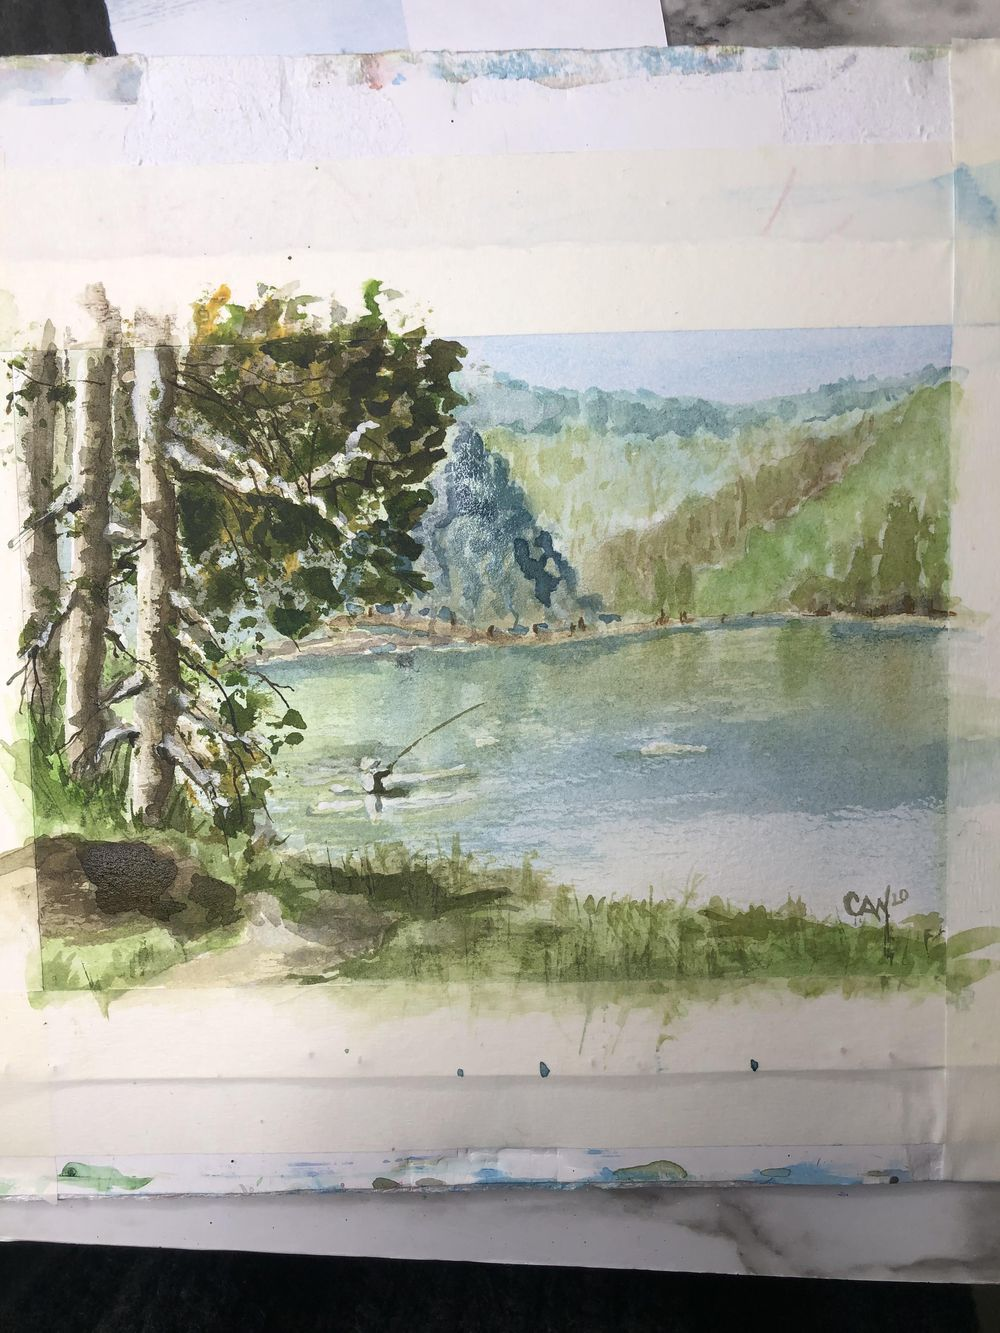 Fly fishing lake - image 1 - student project